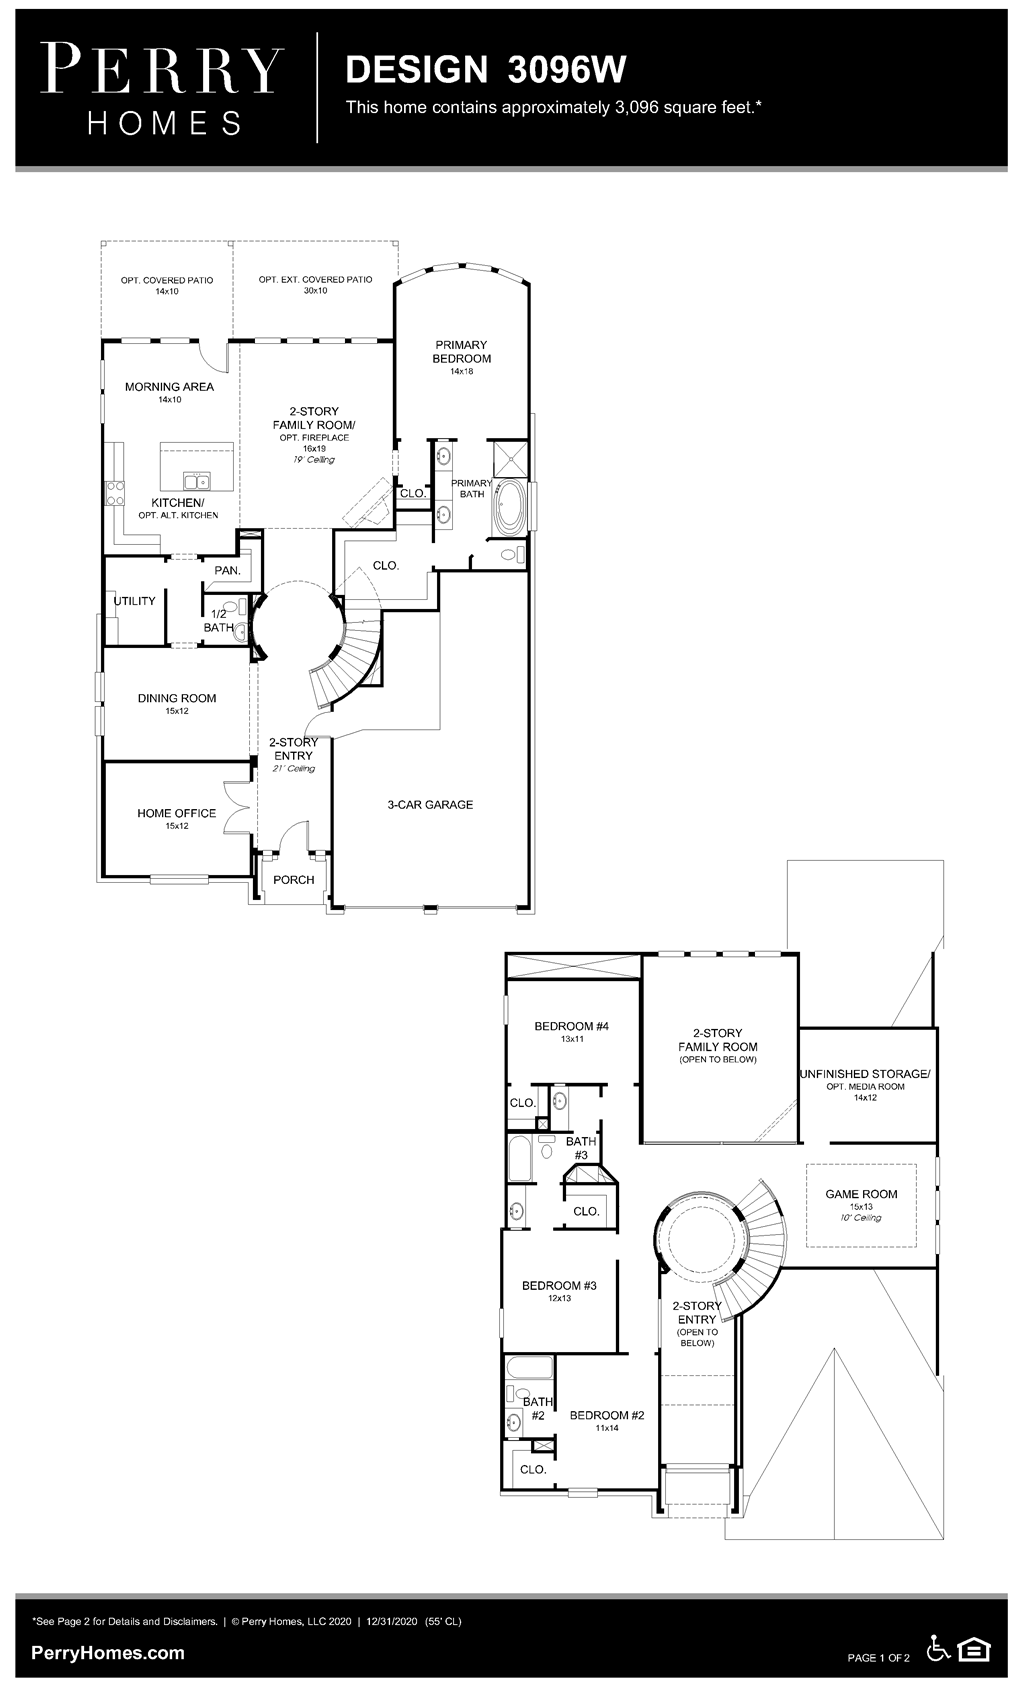 Floor Plan for 3096W